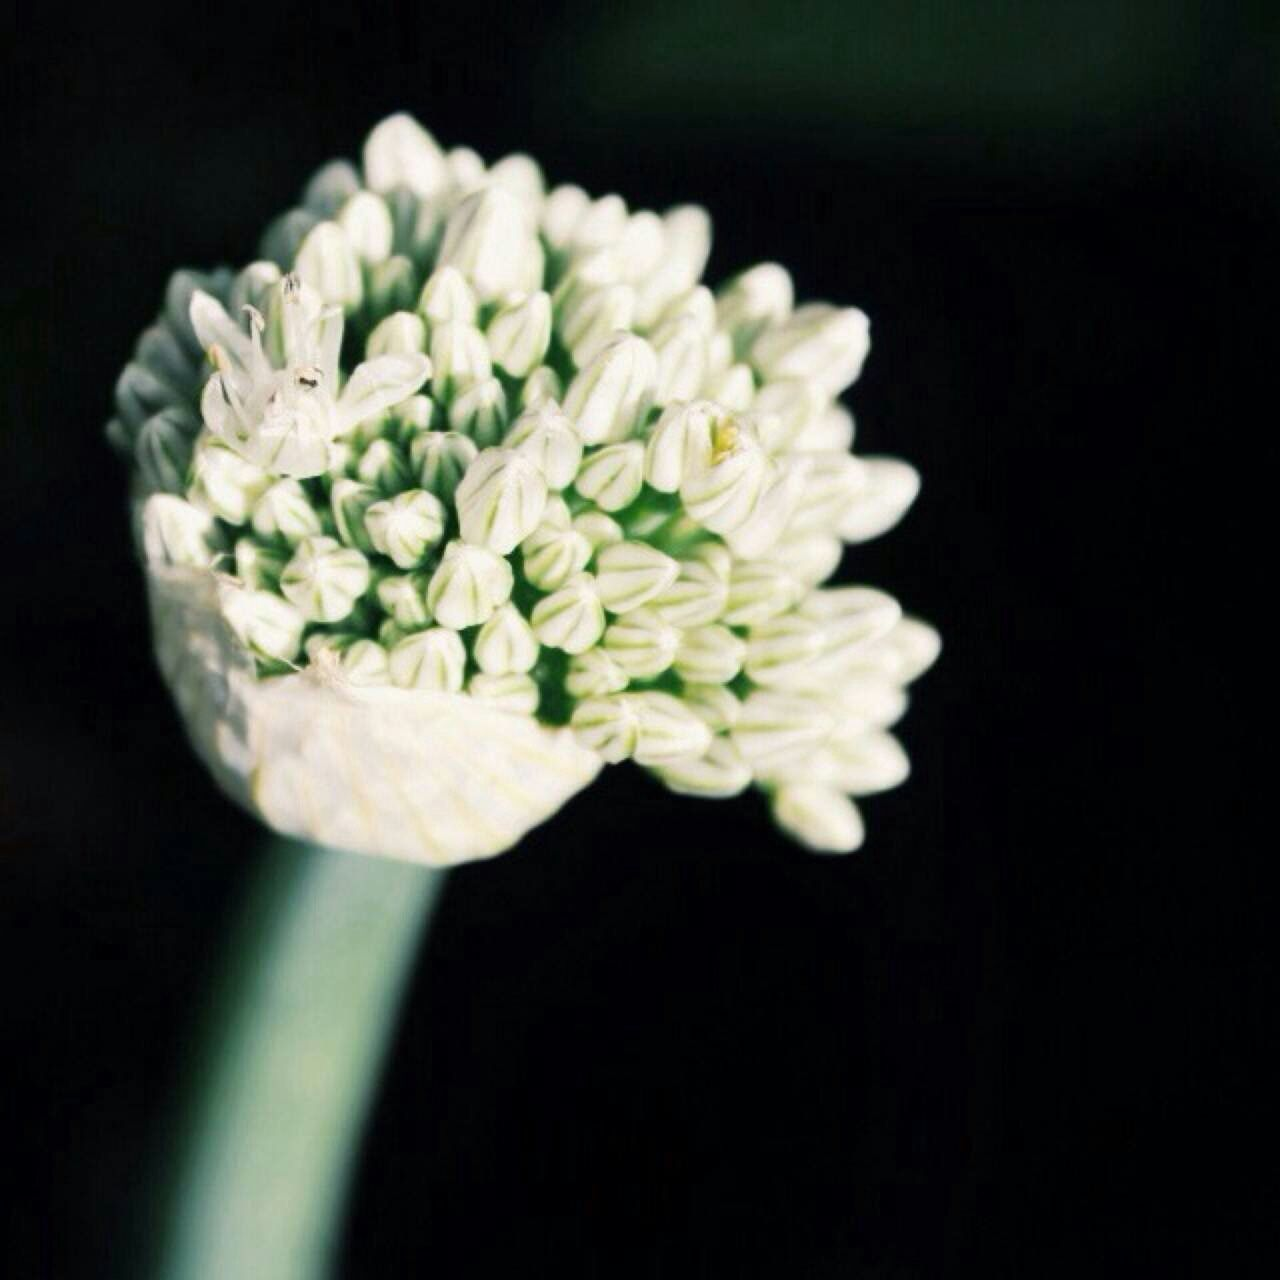 Deceptively Simple Flower Garlic Flower White WhiteCollection White Album Garlic Flower Collection Garlic Flower White Flower Black Background Summer Vegetables Beauty In Nature Close-up Close Up Selective Focus Flowers,Plants & Garden Flowers Flower Head Flowers_collection Garden Garden Photography Gardening Plants